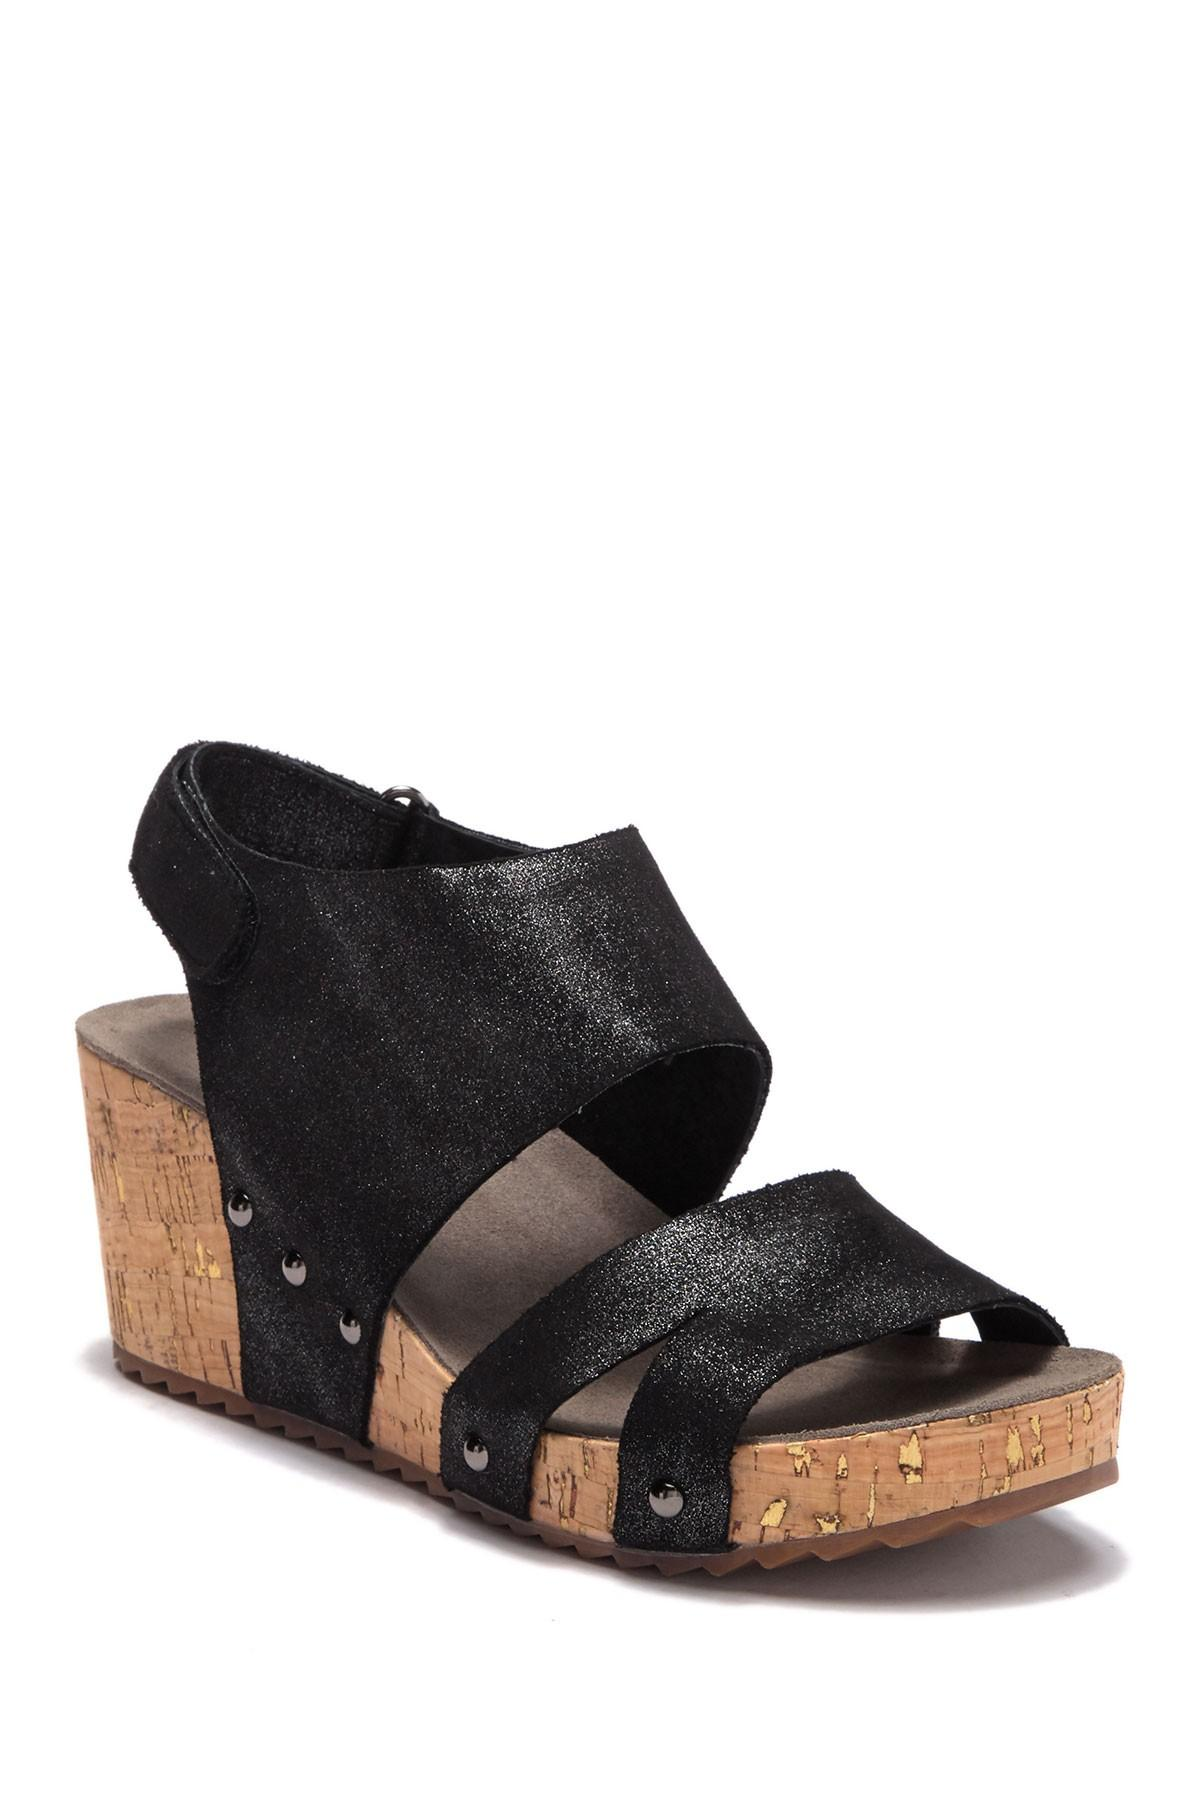 5a45b3aa129 Lyst - Antelope Platform Wedge Cork Sandal in Black